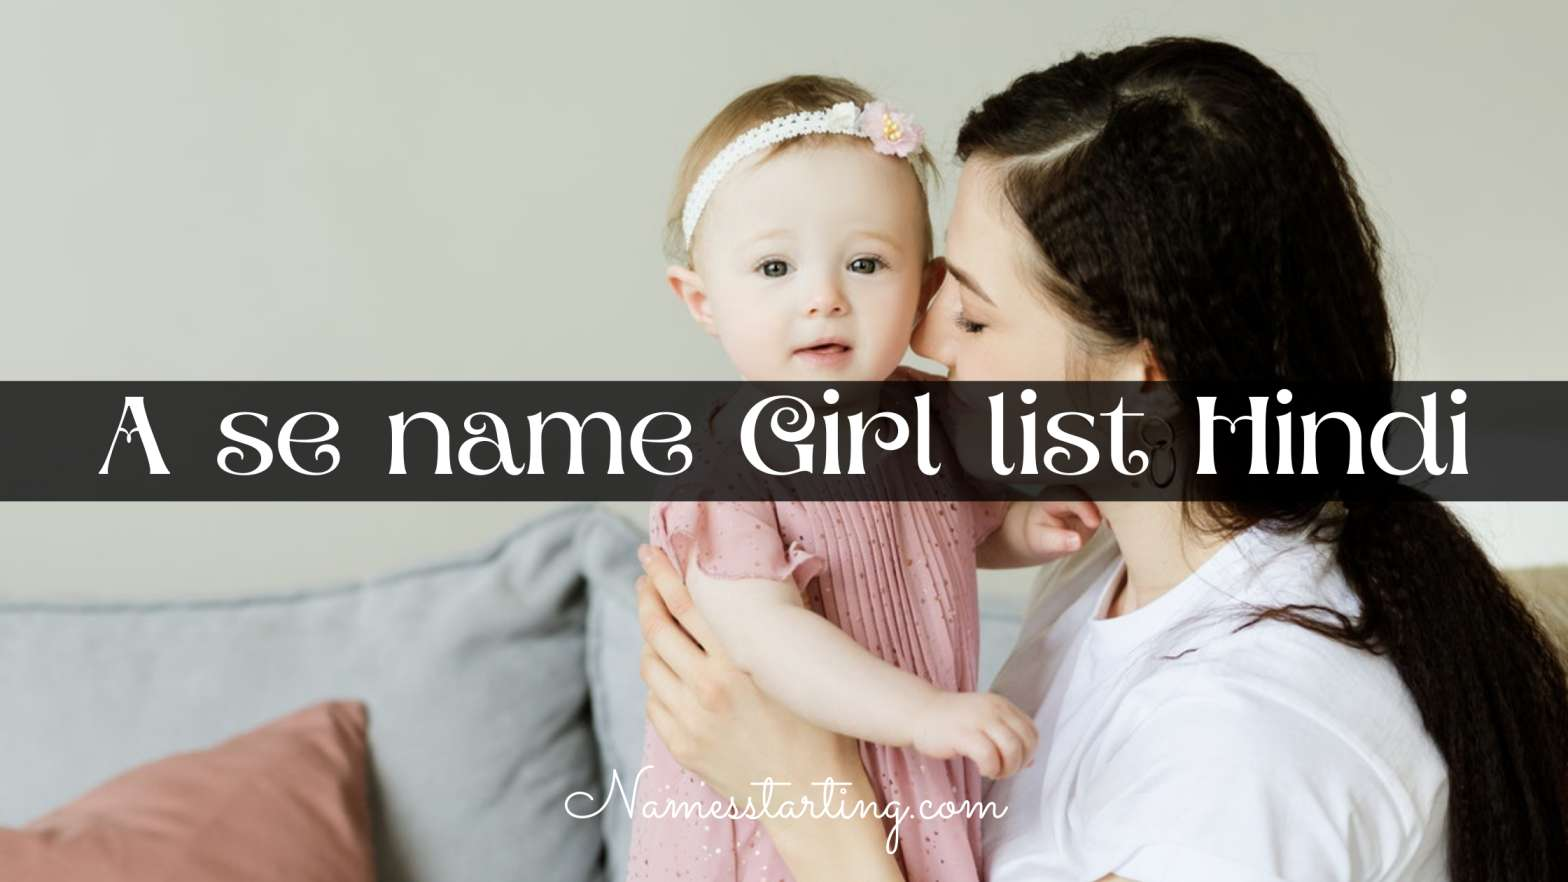 girl names starting with a, a girl names hindu, baby names starting with a for girl, a alphabet names for girls, baby names start a, girl names in hindu starting with a, girl baby names starting with a in hindu, baby girl name letter a, girls name with a letter, a letter name girl, sanskrit baby girl names starting with a, a se girl name, a se name girl, girl names from a to z, a letter names for girls hindu, a word name of girl, a letter girl name list hindu, a se baby girl names hindu, unique girls name starting with a, a se naam girl new, a se name for girls, quranic girl names starting with a, a to z baby names, baby names letter a, baby girl name start letter a, girls names starting with letter a, name starts with a for girl hindu, a se naam for girl, a letter names girl hindu, a letter se girl name, a start name girl, telugu names starting with a, unique j names for a girl, a letter names for girl hindu latest, a word se girl name, baby names girl a letter, baby girl name alphabet a, a word name girl hindu, girl name begin with a, baby girl names in kannada starting with a, a letter baby girl names hindu, a se naam girl, unique baby girl names starting with a, baby girl names hindu modern starting with a, a ward name girl, a sa name girl, latest baby girl names starting with a, a se girl name hindu, a se baby girl name, sanskrit names for girls starting with a, unique baby names start with a, baby girl names starting with a and meaning, hindu names starting with a for girl, baby girl names hindu a letter, baby girl names starting with a hindu modern, a se baby girl names, a alphabet girl name in हिंदी